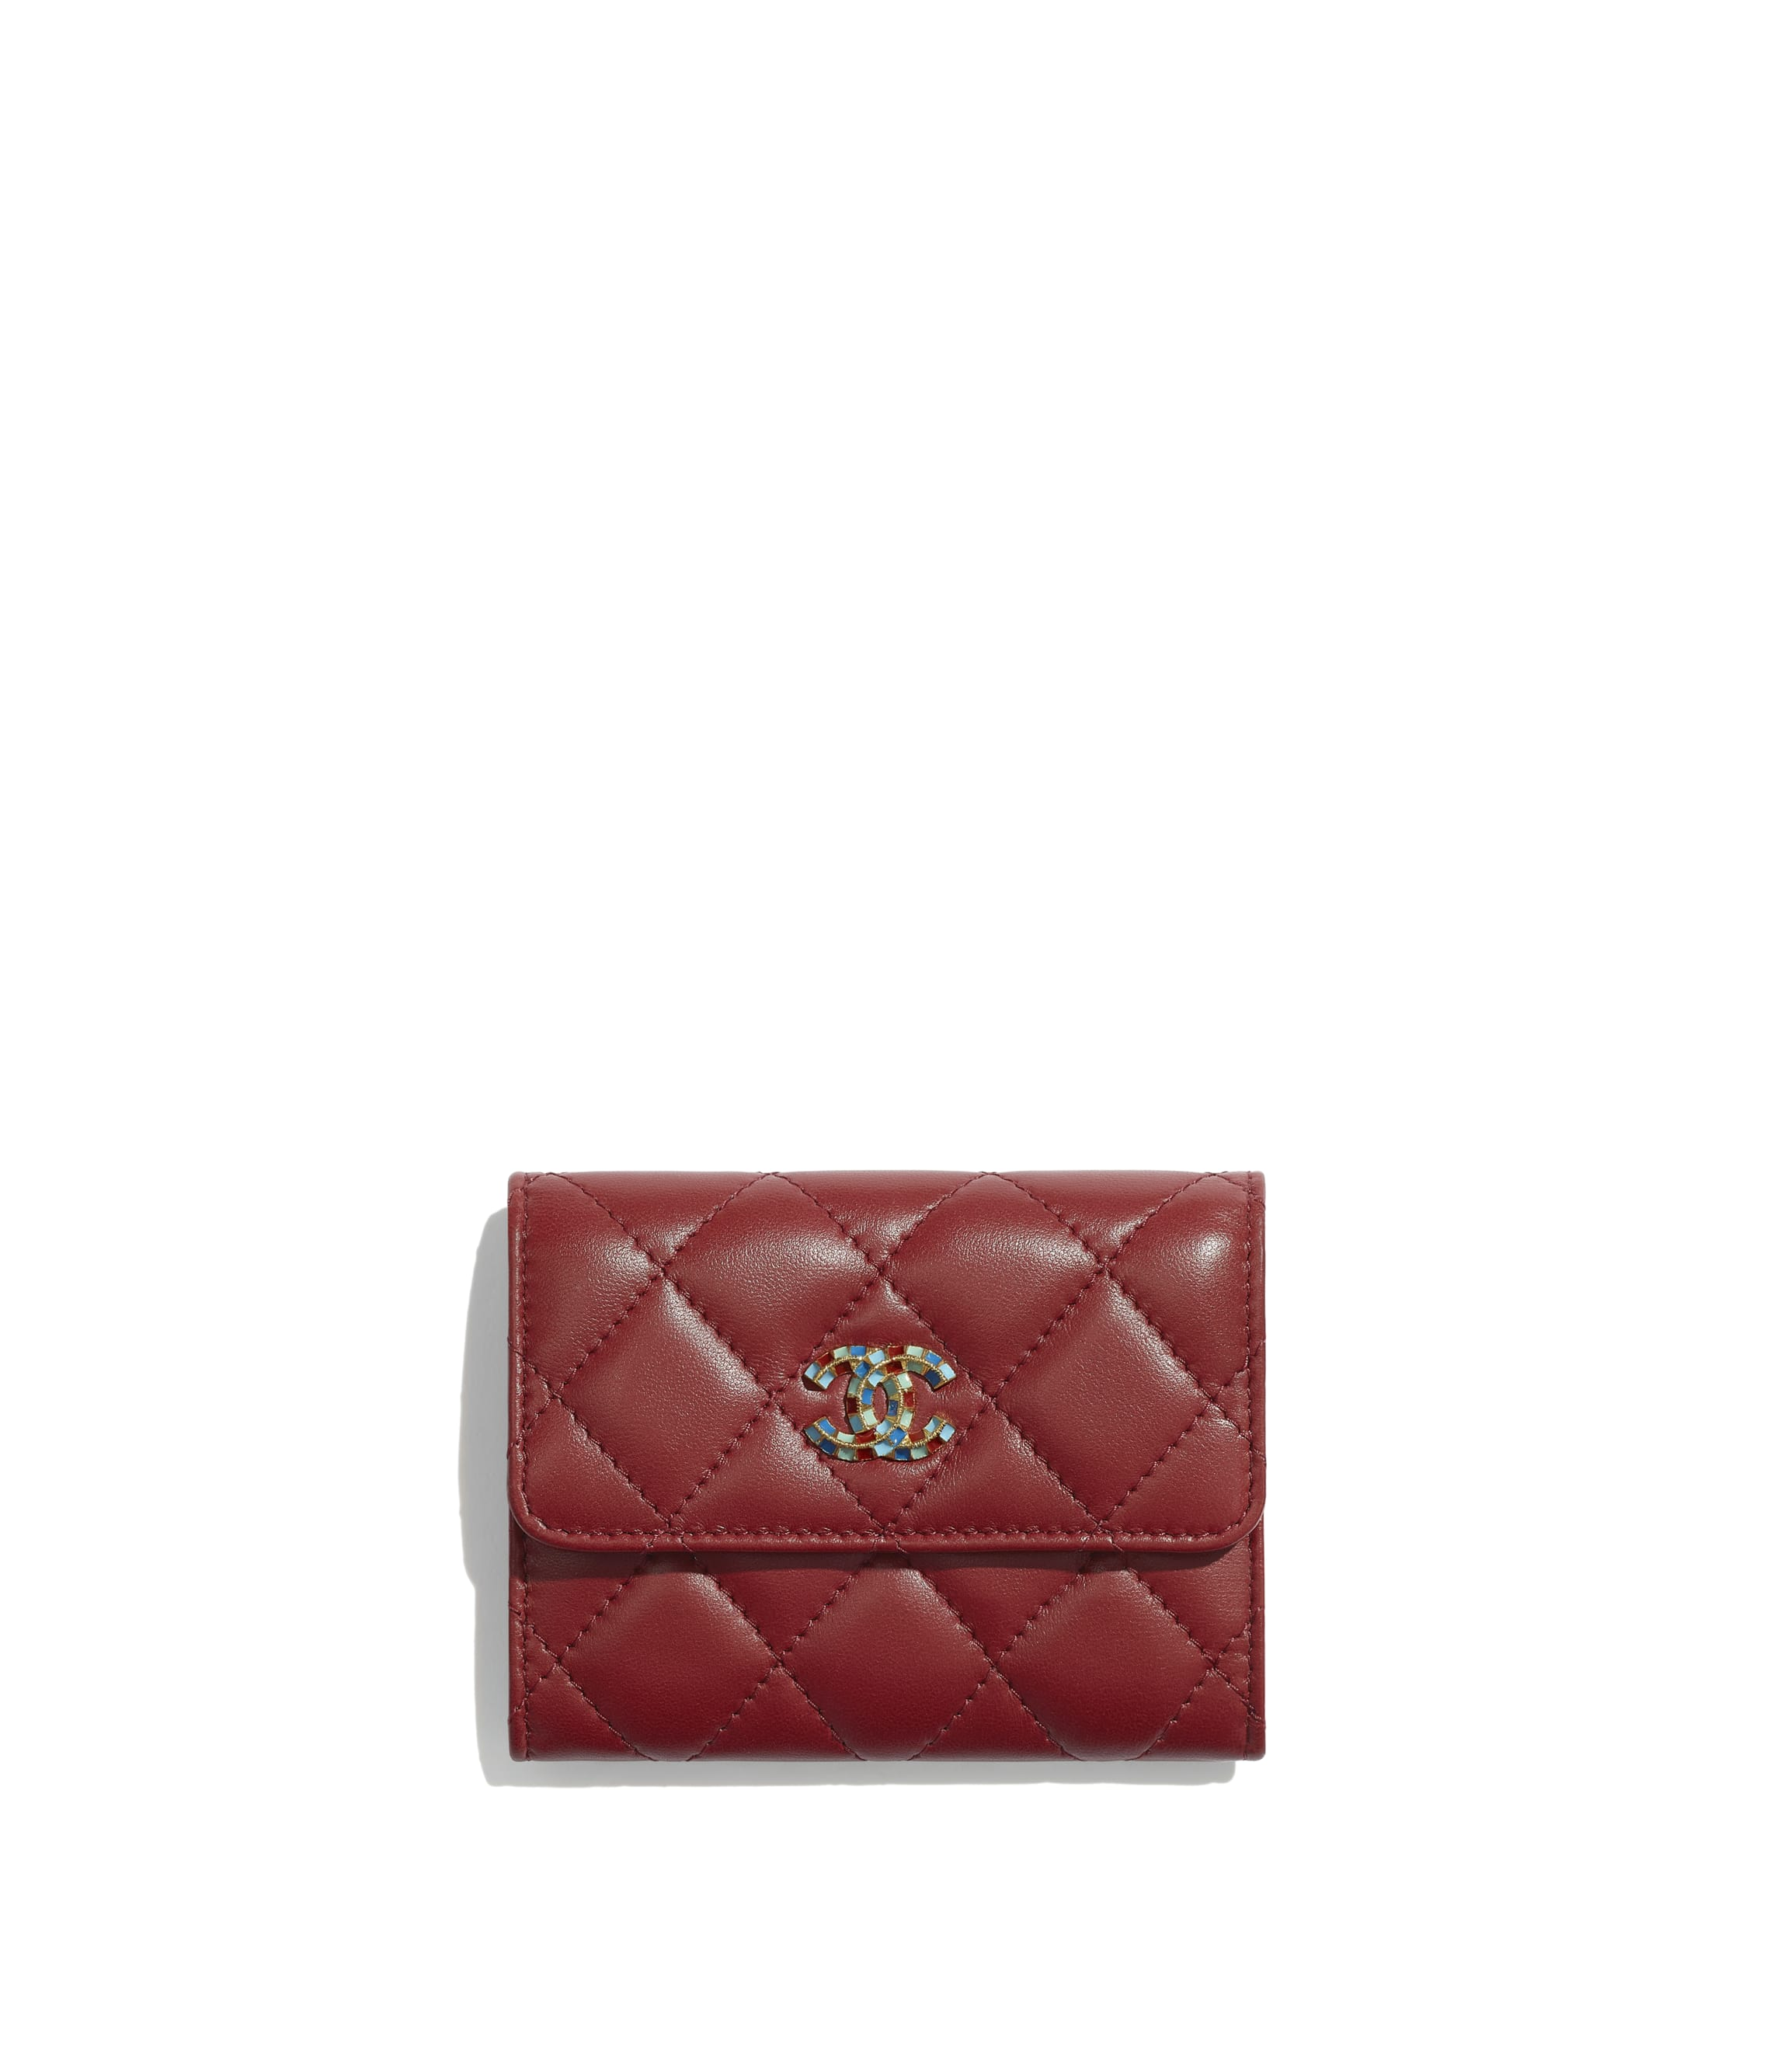 7fbbe366e9b3 Coin Purses - Small Leather Goods - CHANEL